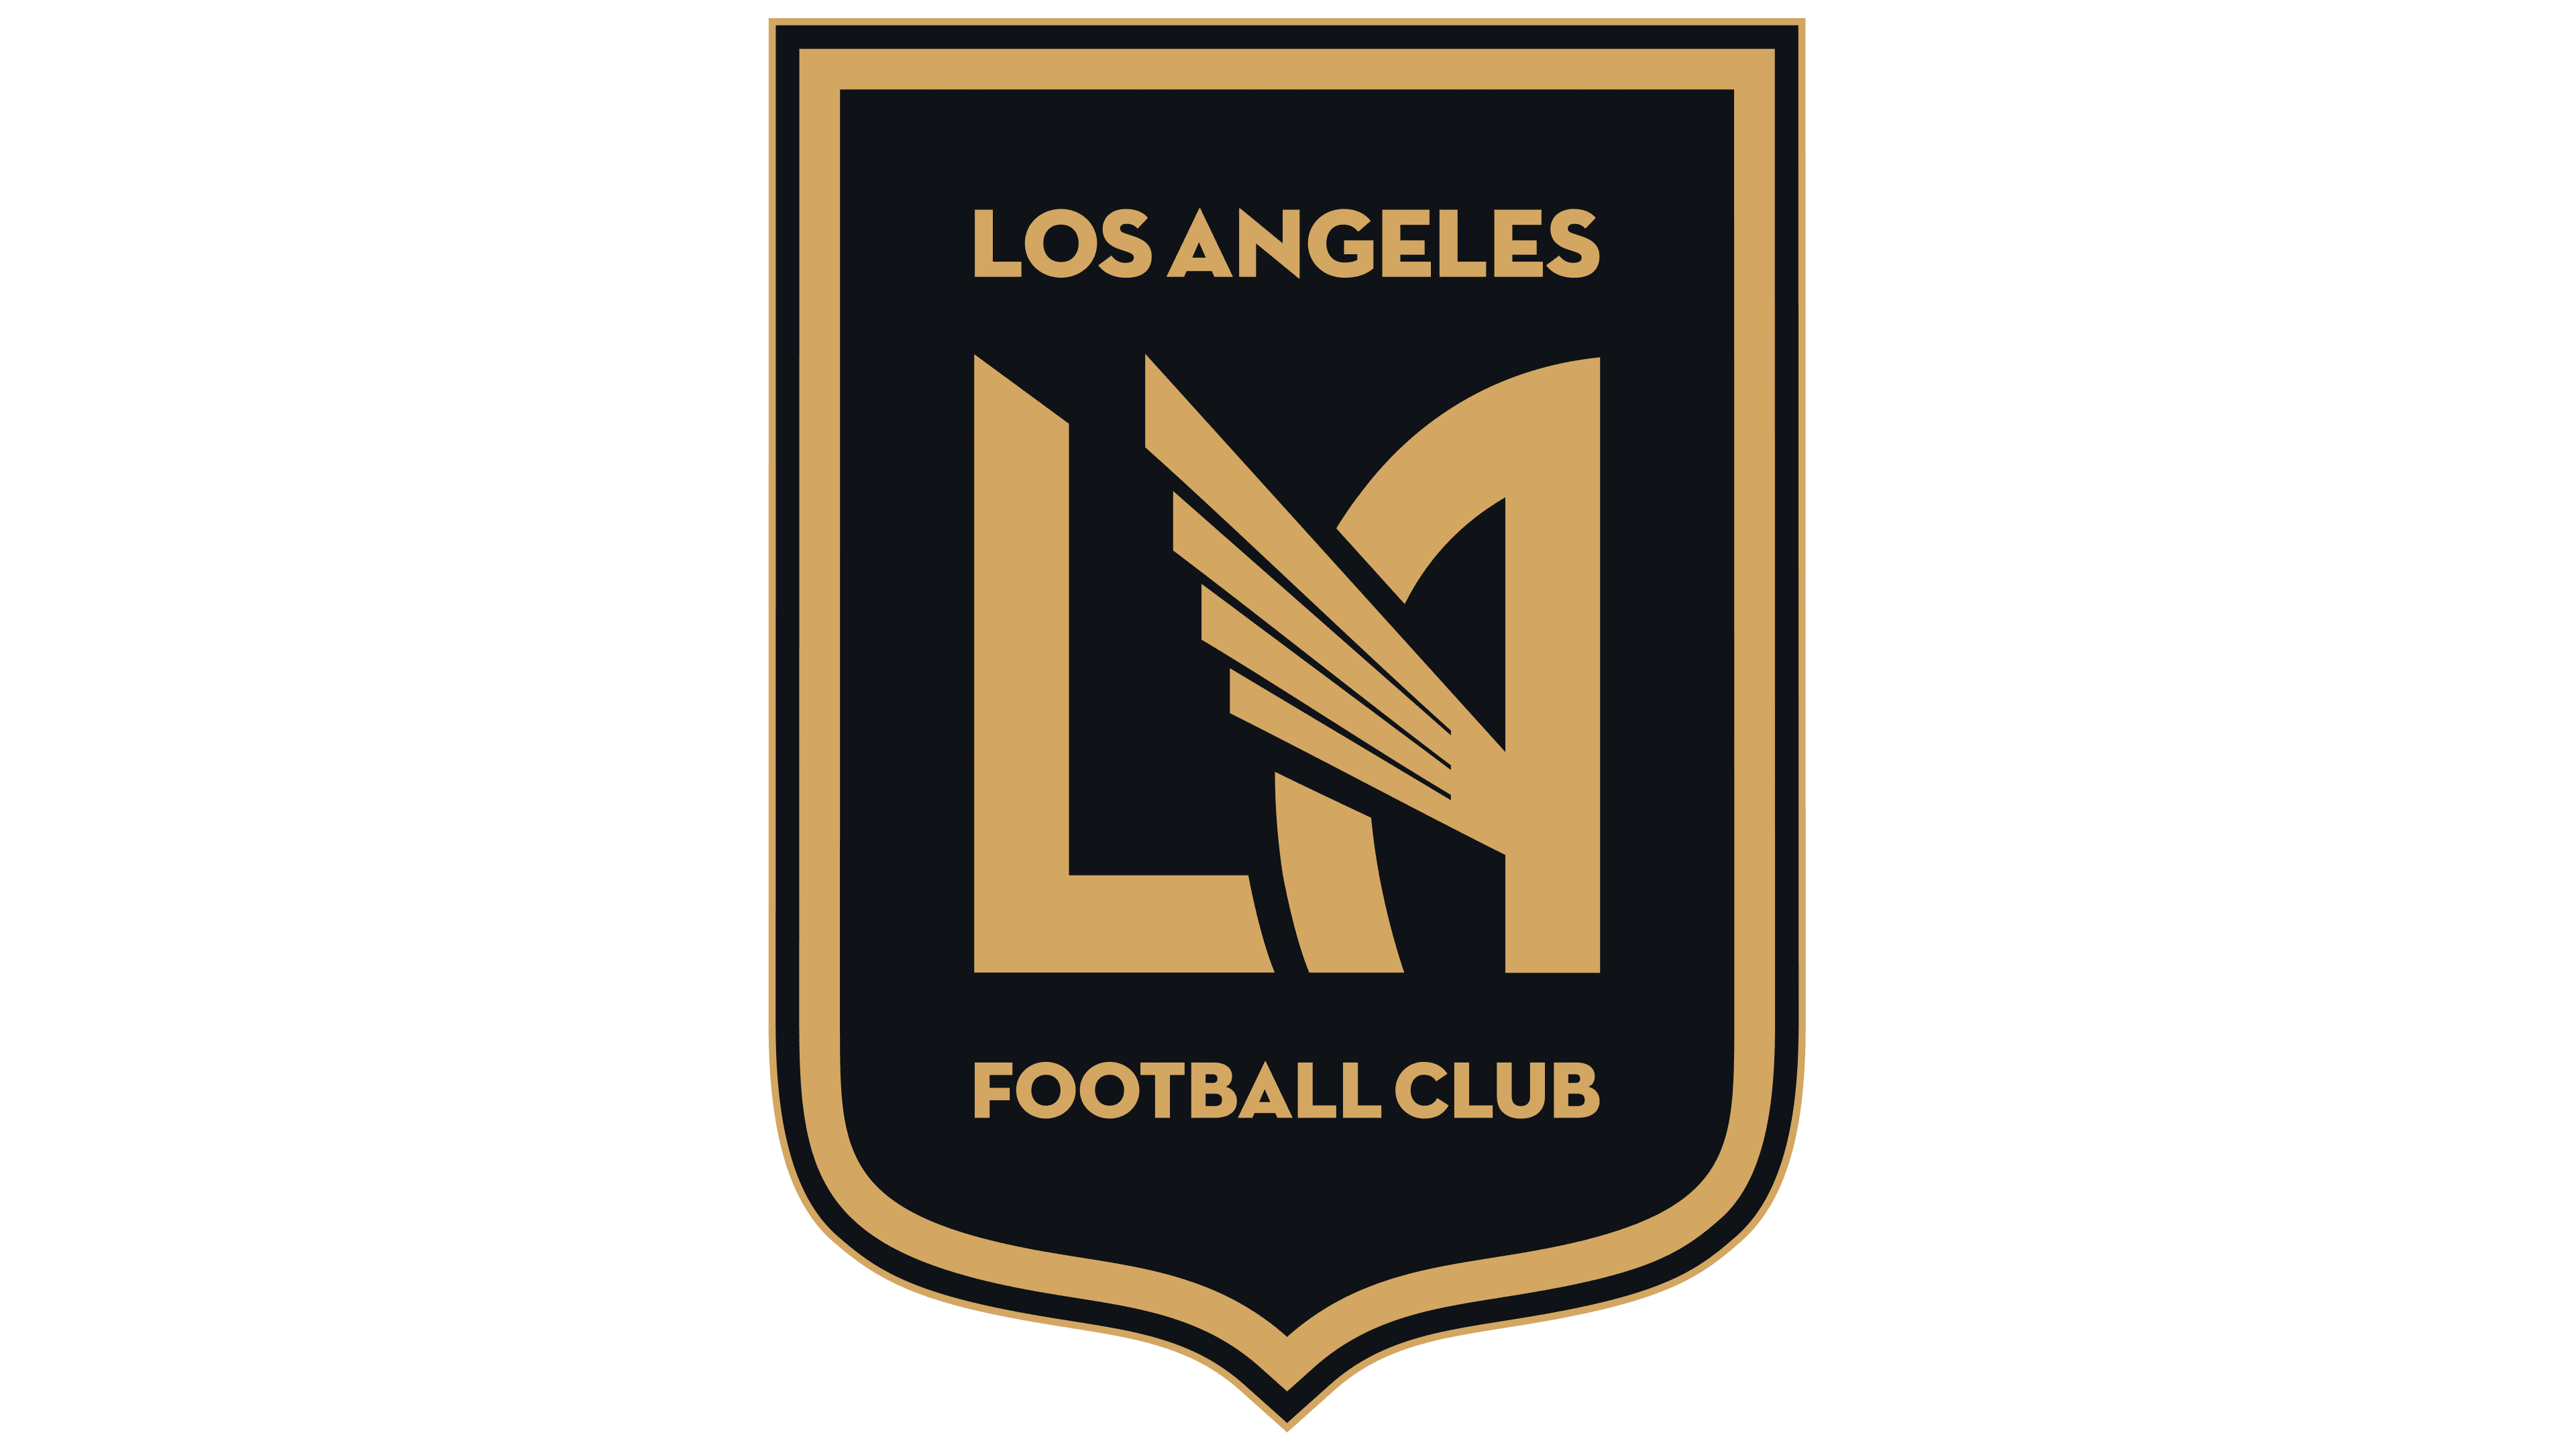 los angeles fc lafc logo the most famous brands and company logos in the world los angeles fc lafc logo the most